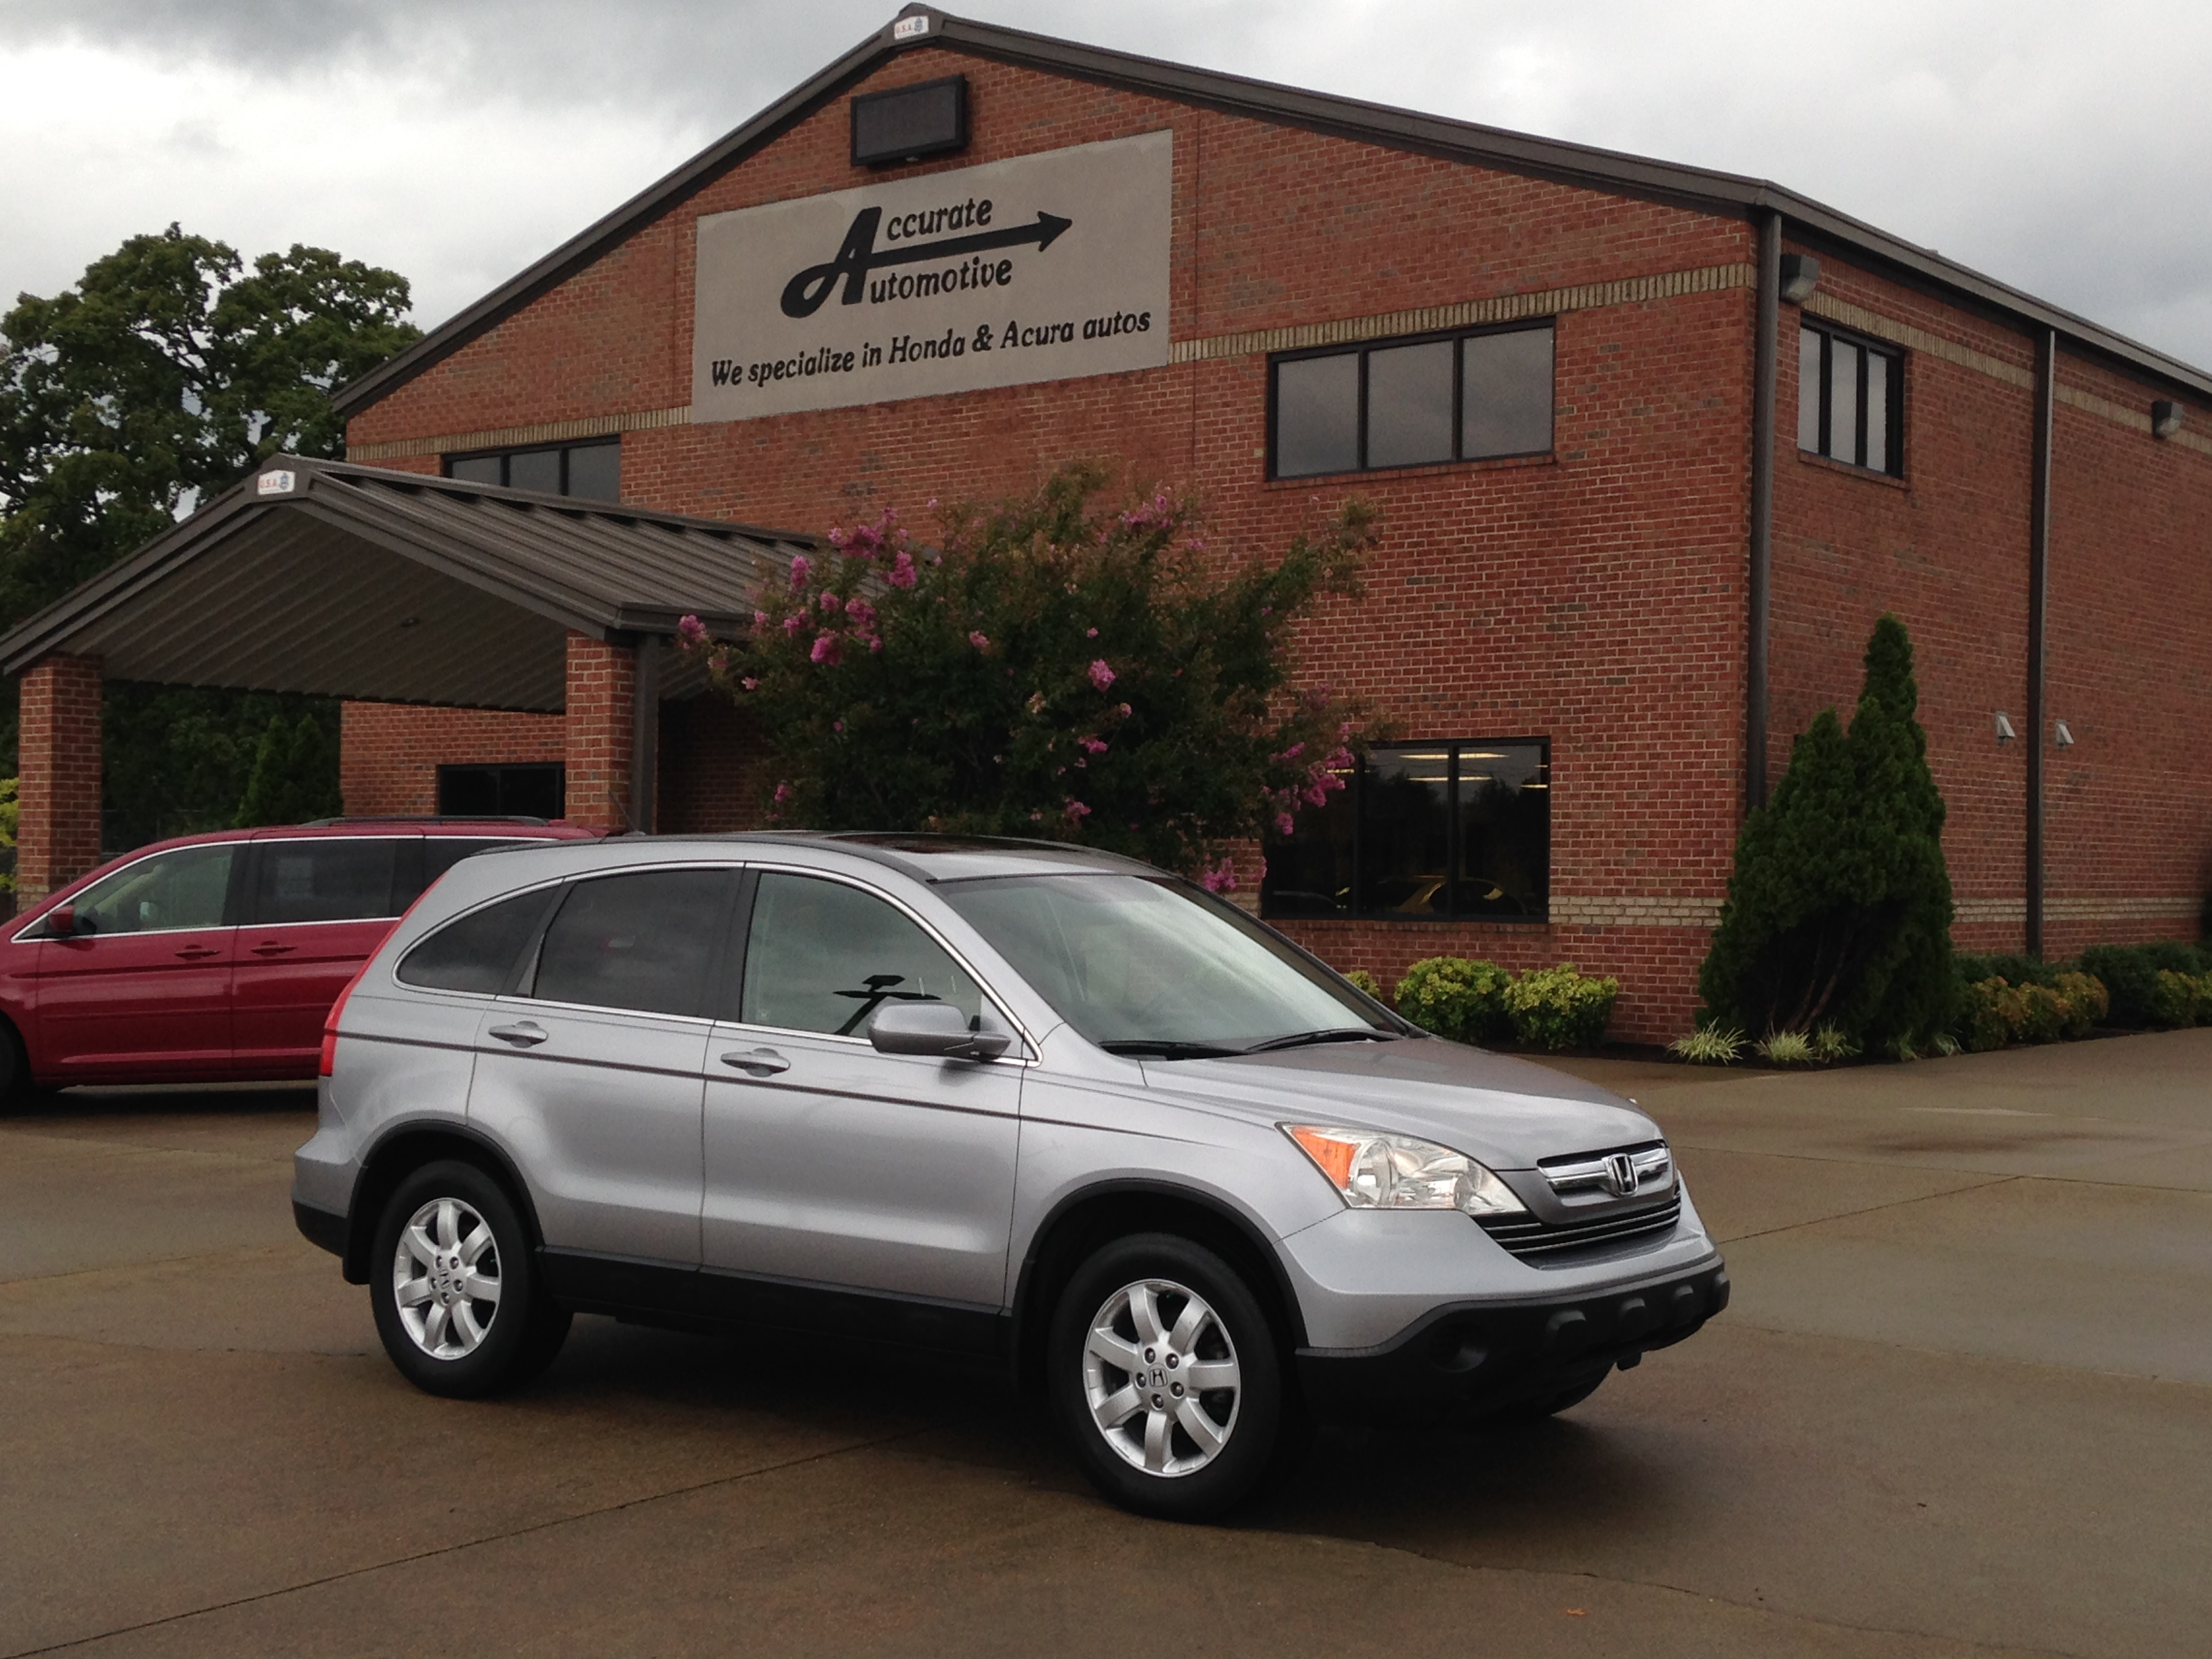 sainte sh pre inventory owned julie extended zdx awd vehicle near elite warranty in montreal en acura used